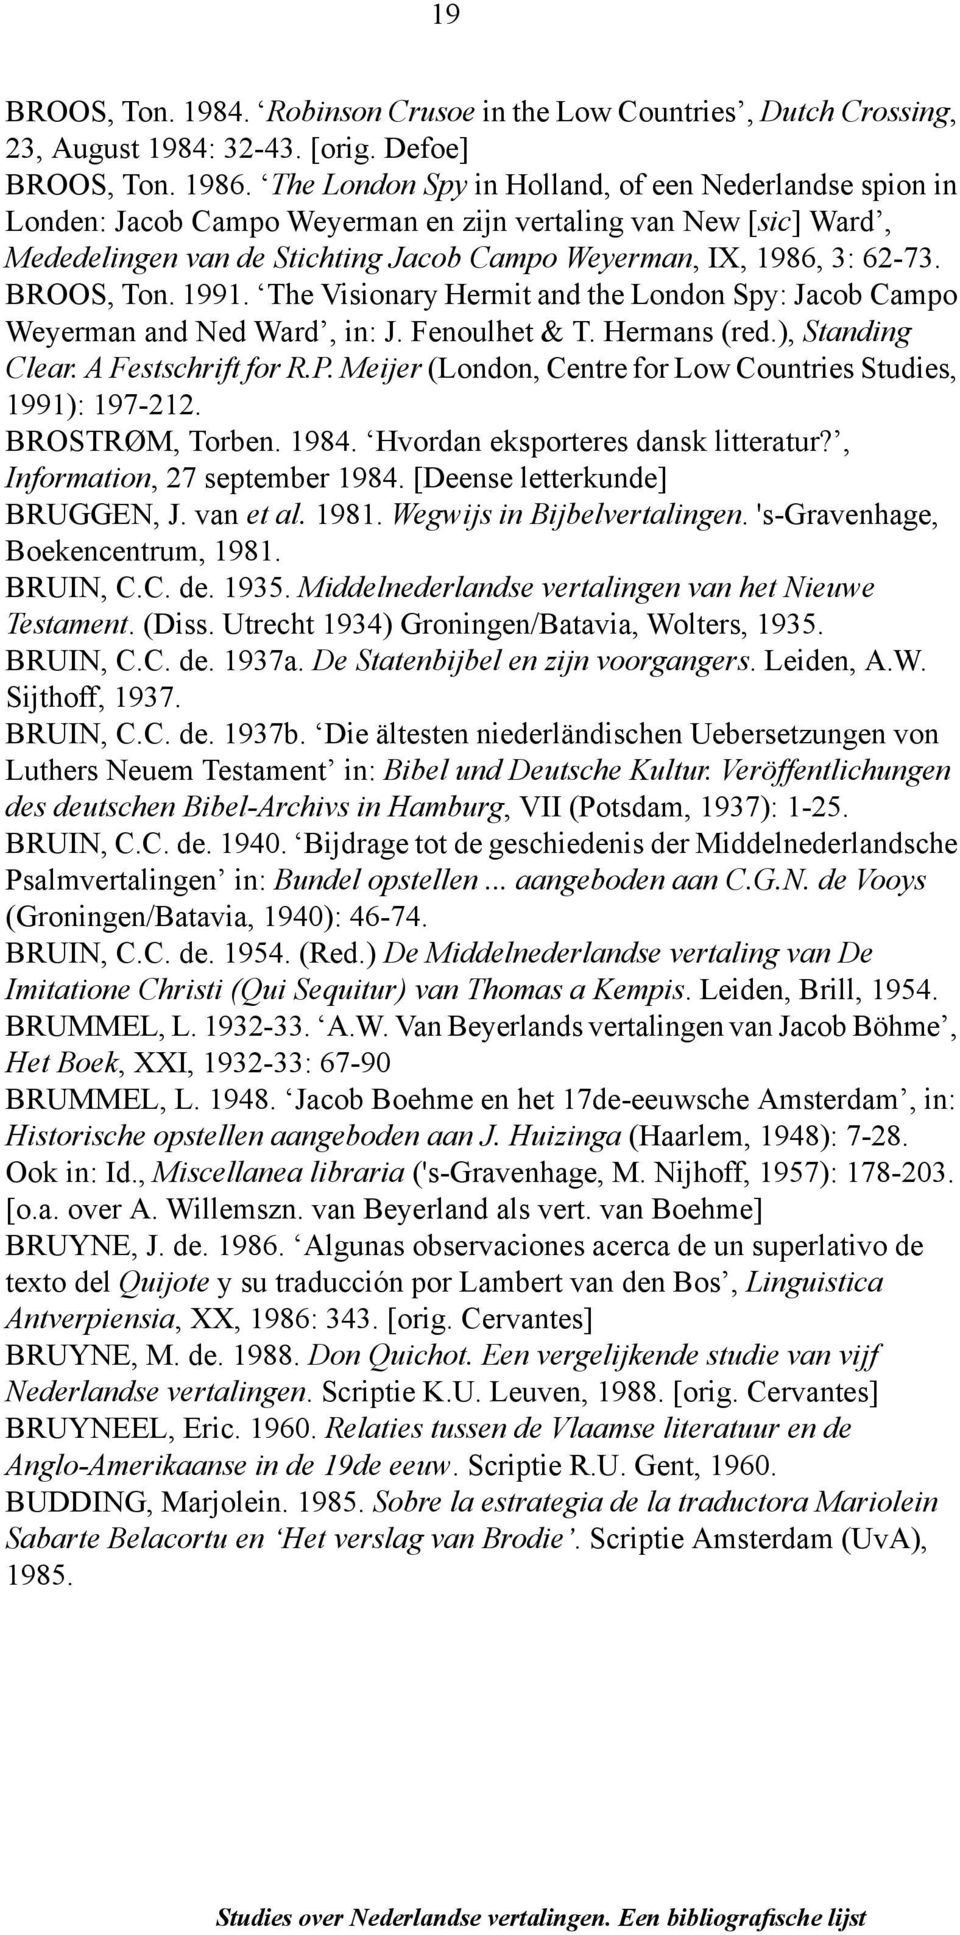 BROOS, Ton. 1991. The Visionary Hermit and the London Spy: Jacob Campo Weyerman and Ned Ward, in: J. Fenoulhet & T. Hermans (red.), Standing Clear. A Festschrift for R.P.